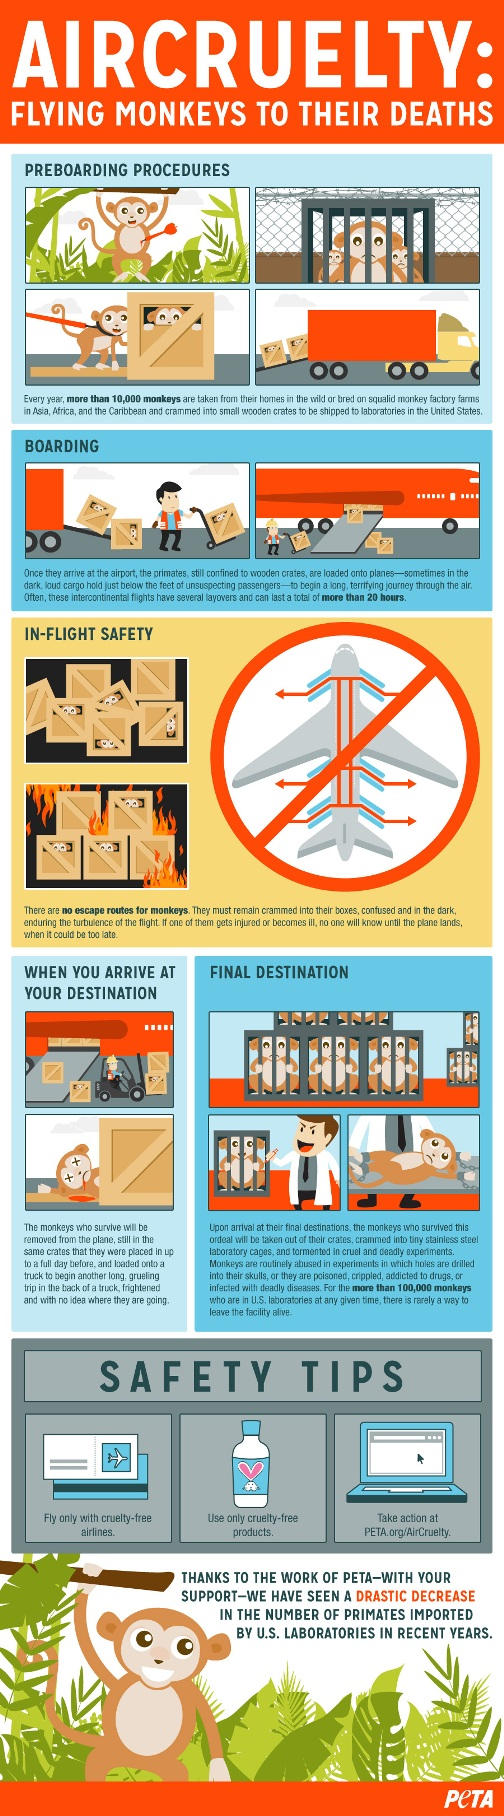 air-cruelty-infographic